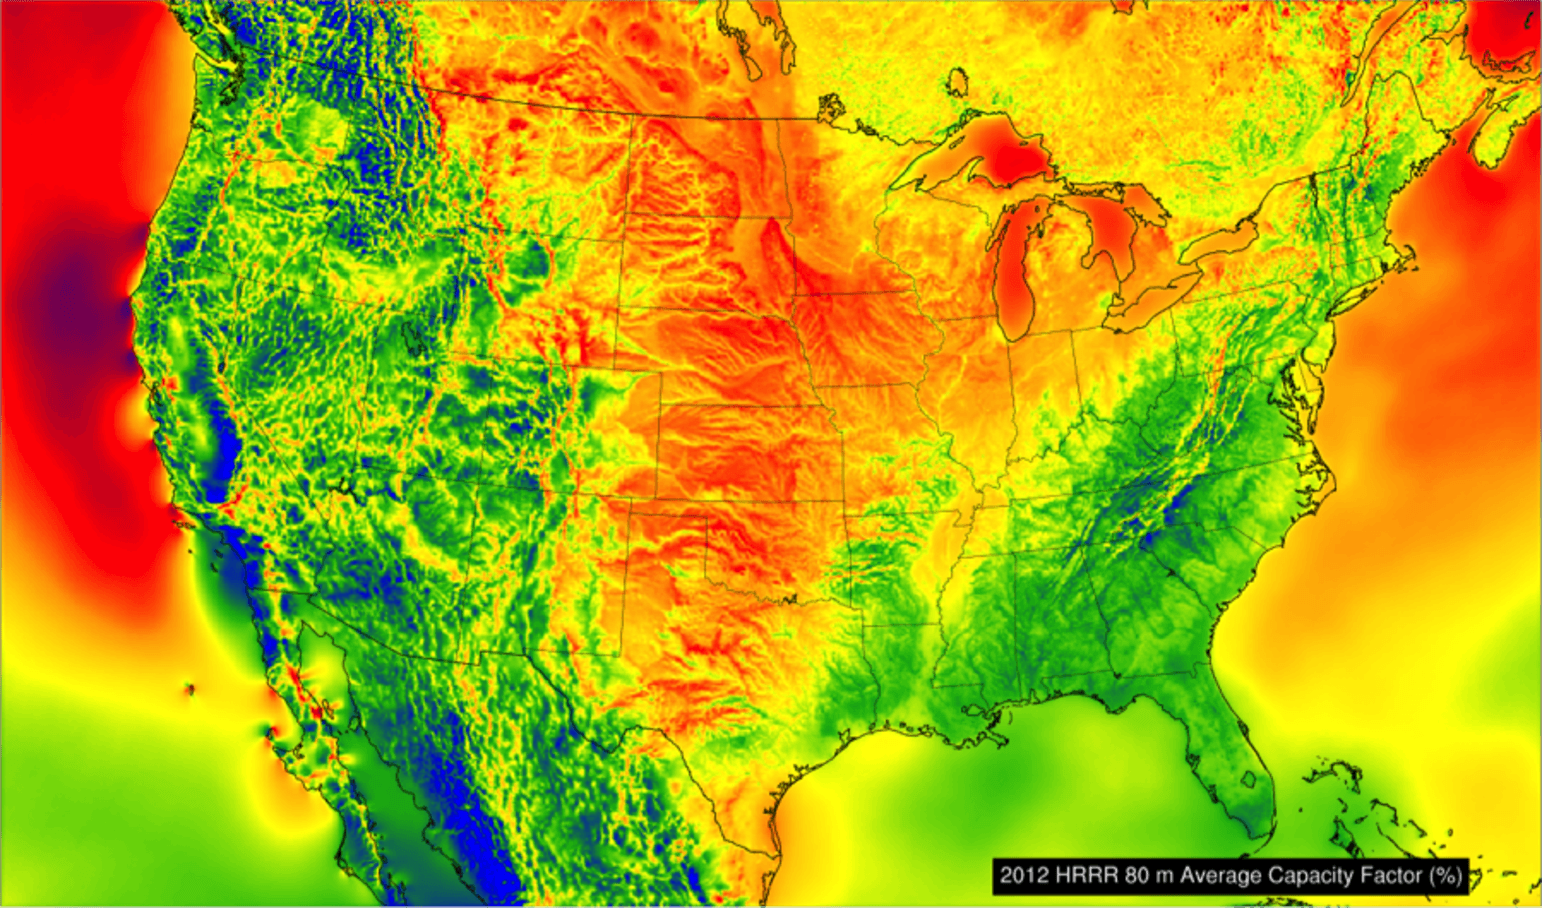 Wind power potential estimates for the U.S. Red indicates high potential, blue is low. - Image Credit: Chris Clack / CIRES, Author provided